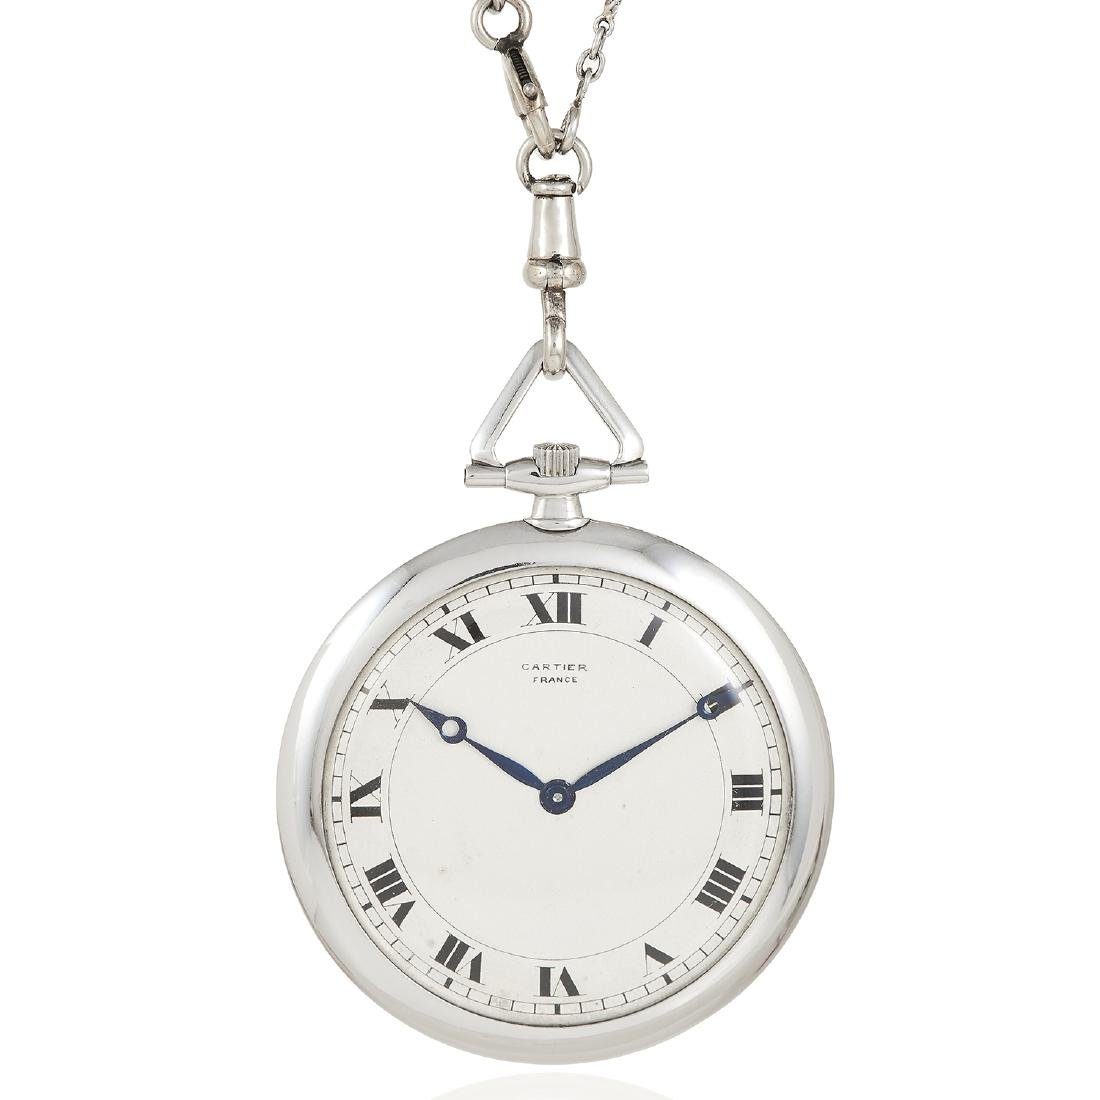 AN ART DECO PEARL WATCH ON CHAIN, CARTIER in white gold